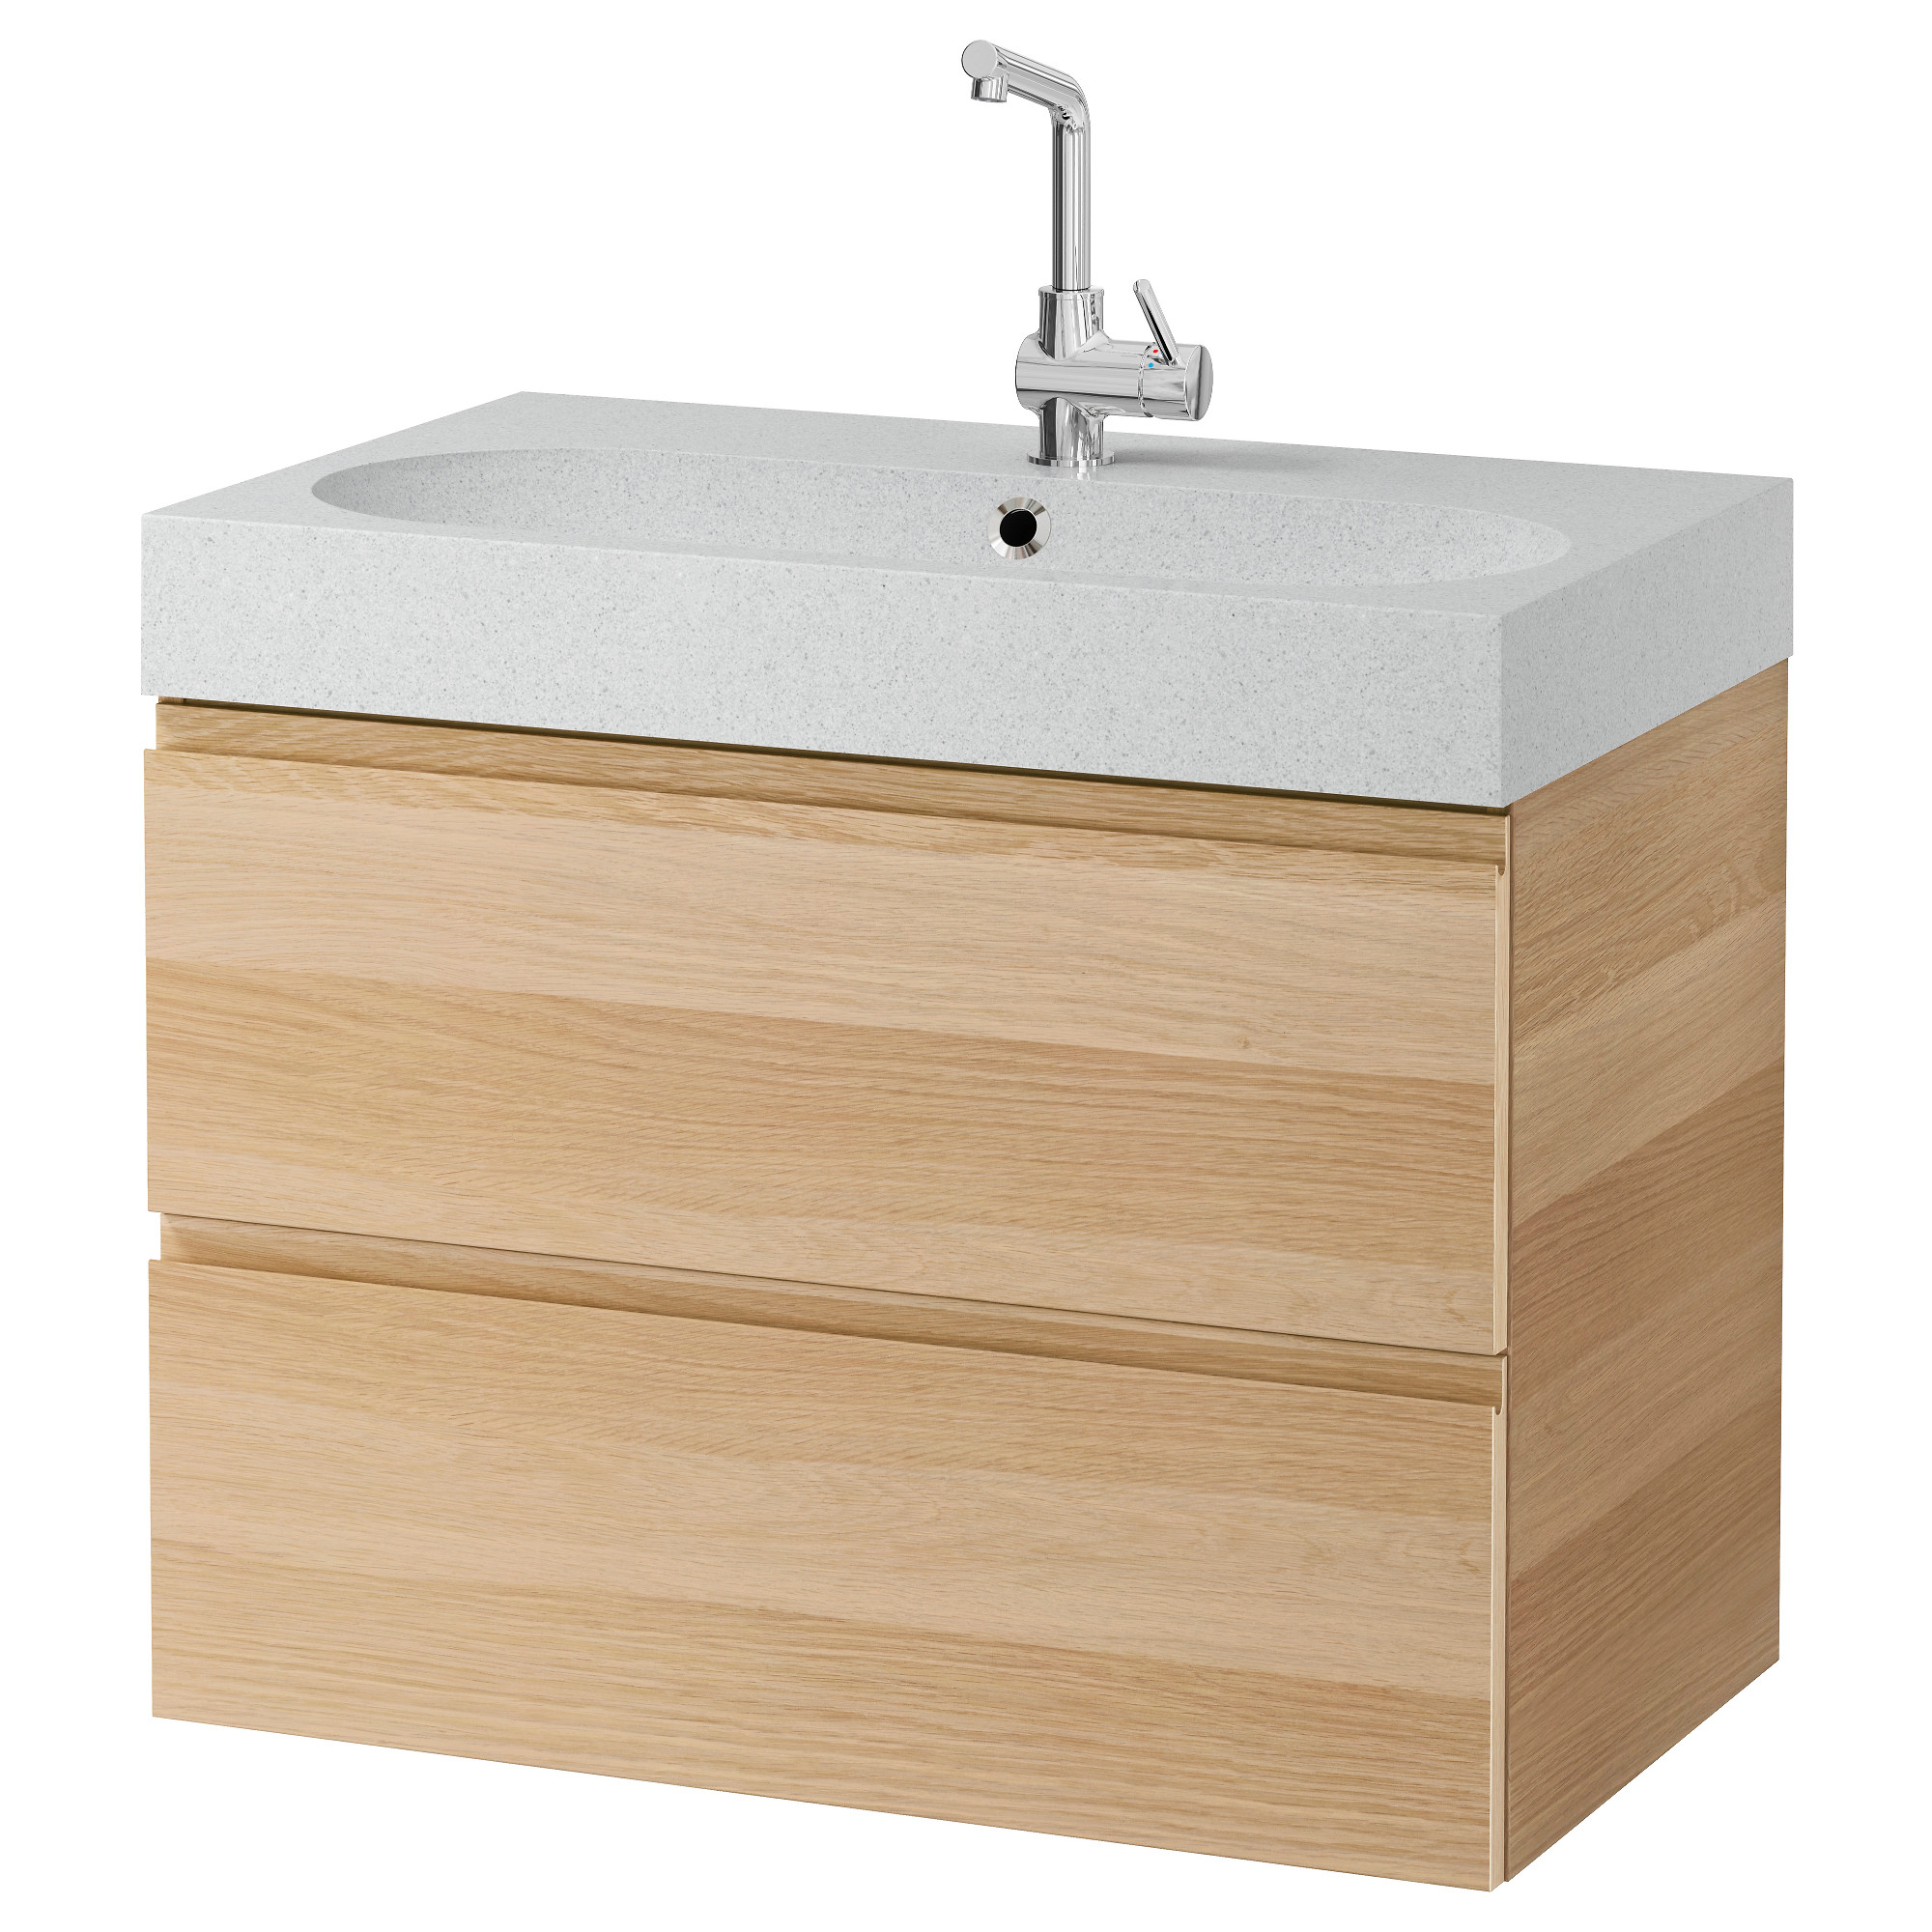 GODMORGON   BR VIKEN sink cabinet with 2 drawers  white stained oak effect   light gray. Sink Cabinets   Bathroom   IKEA